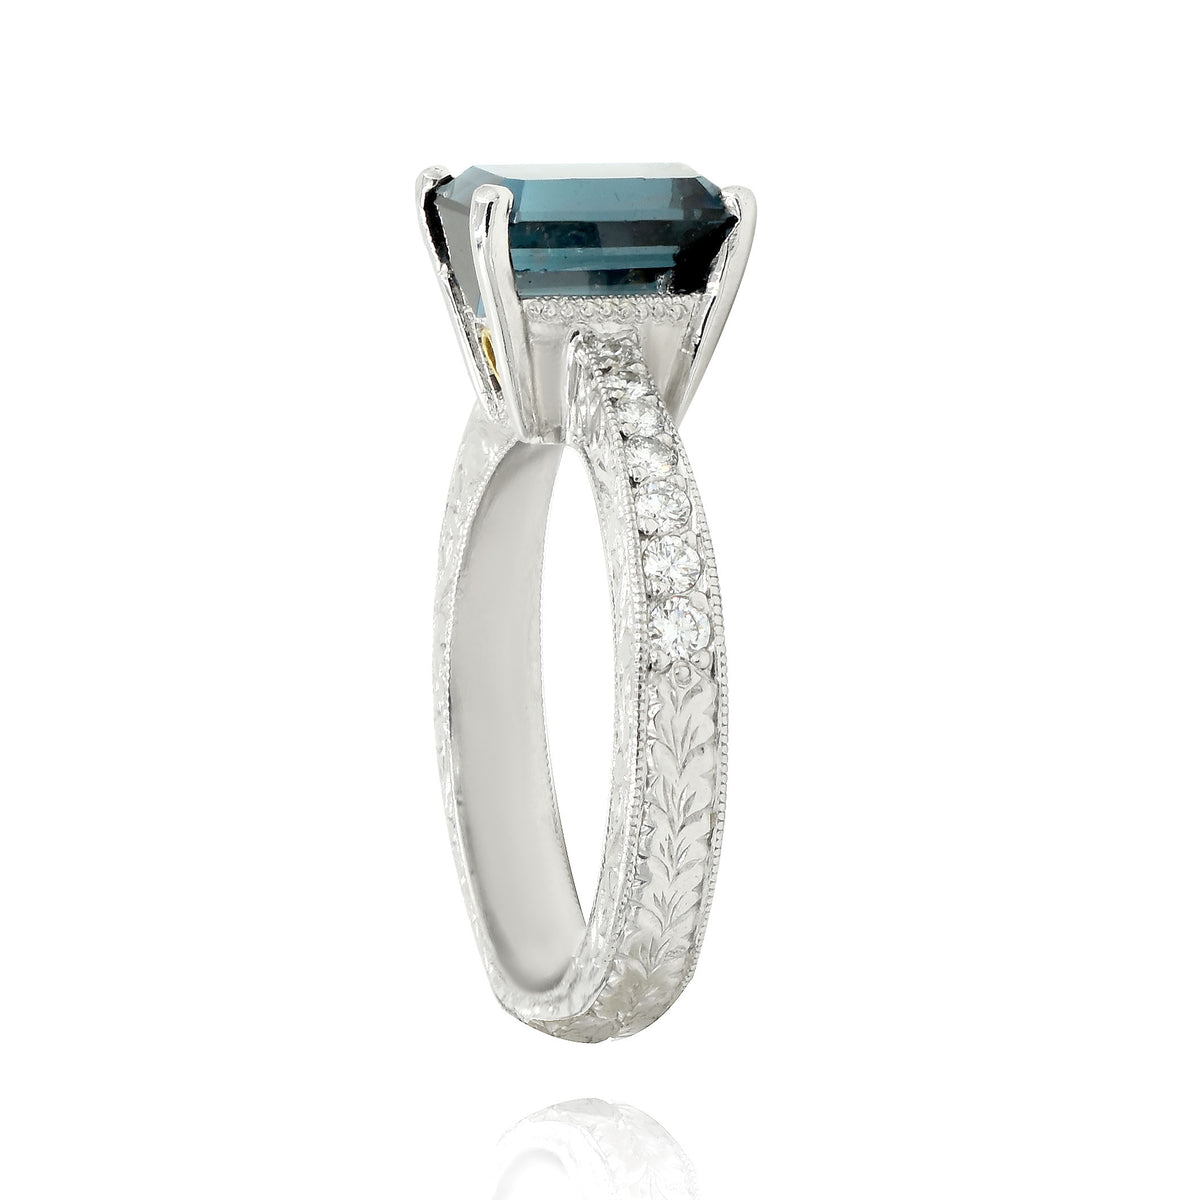 Platinum Beaudry Ring with an Indicolite Tourmaline